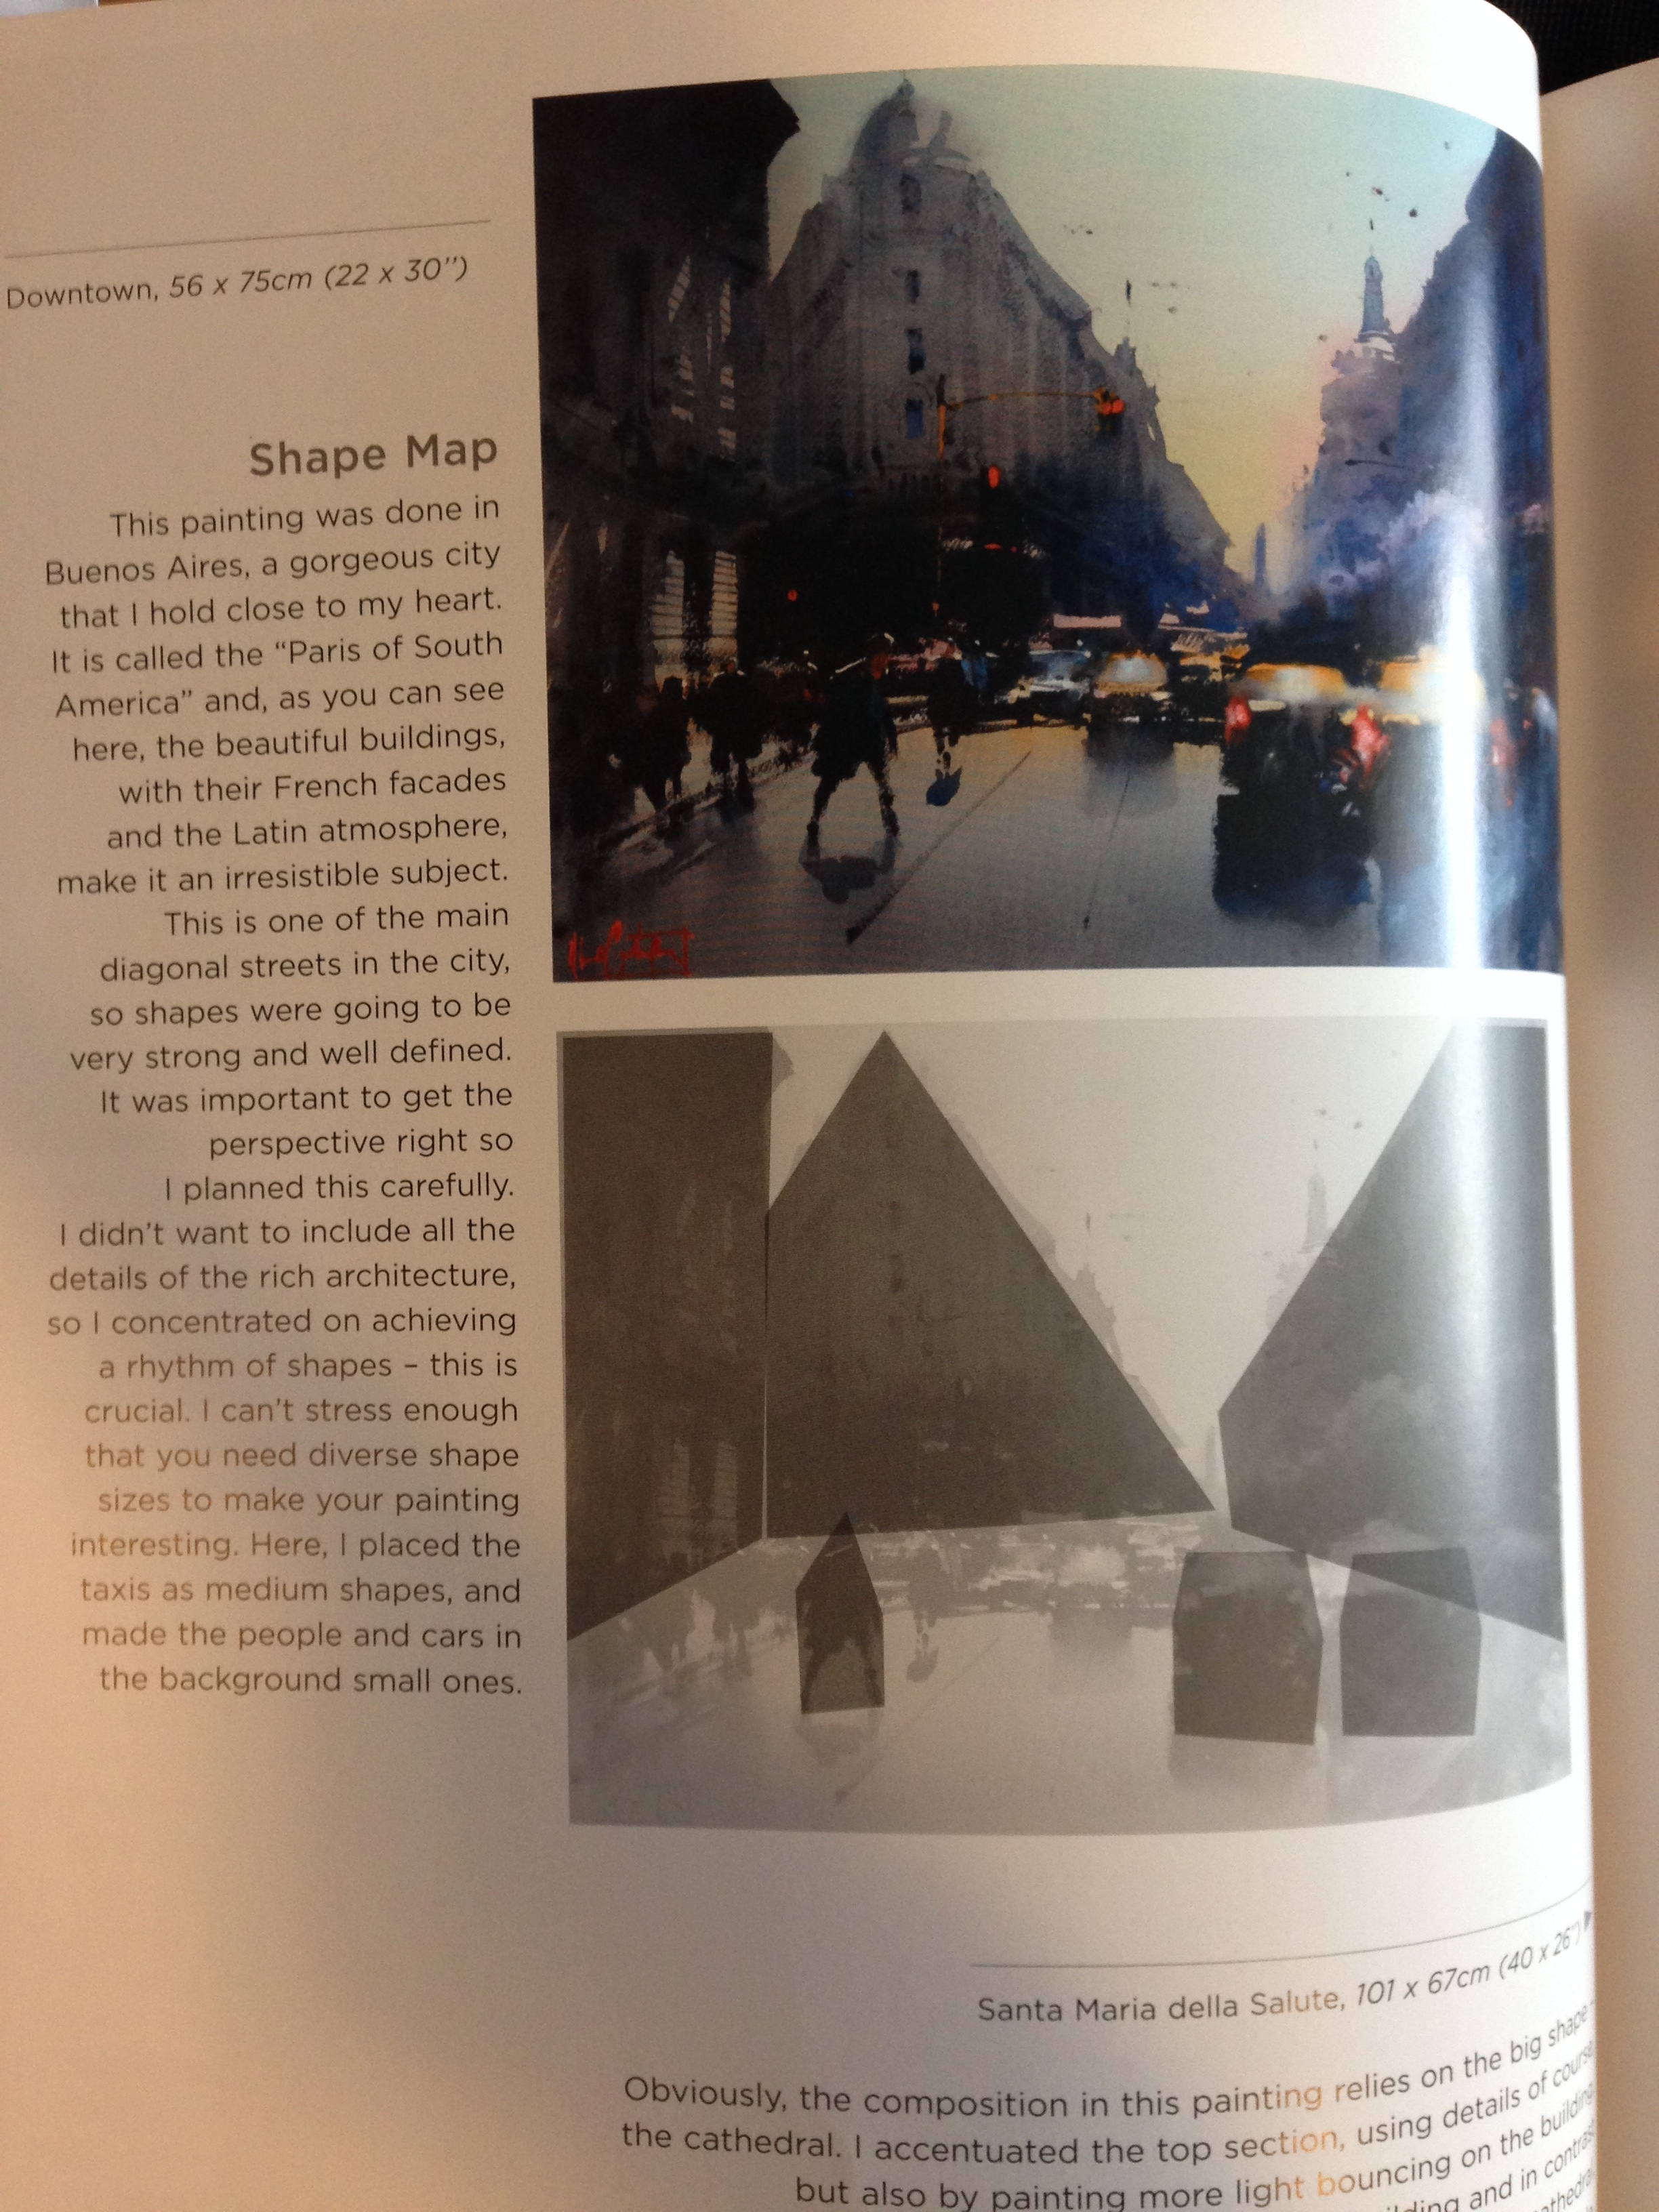 Here you can also see one of the blurbs, where he talks about the specifics of a painting...